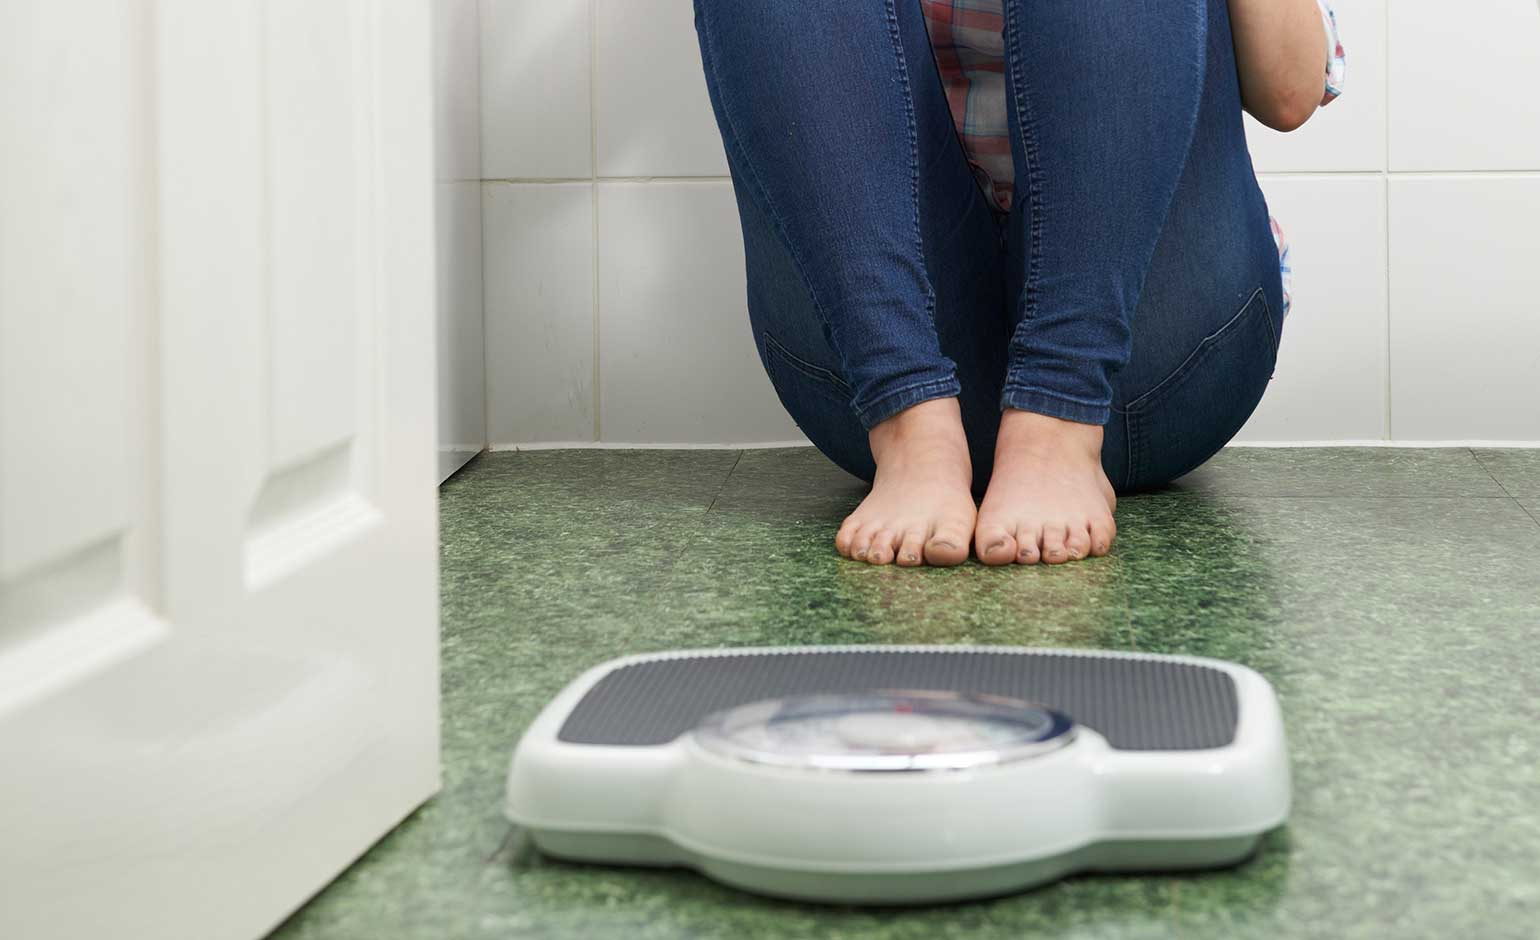 Mental health trust urges those struggling with eating disorders to seek help